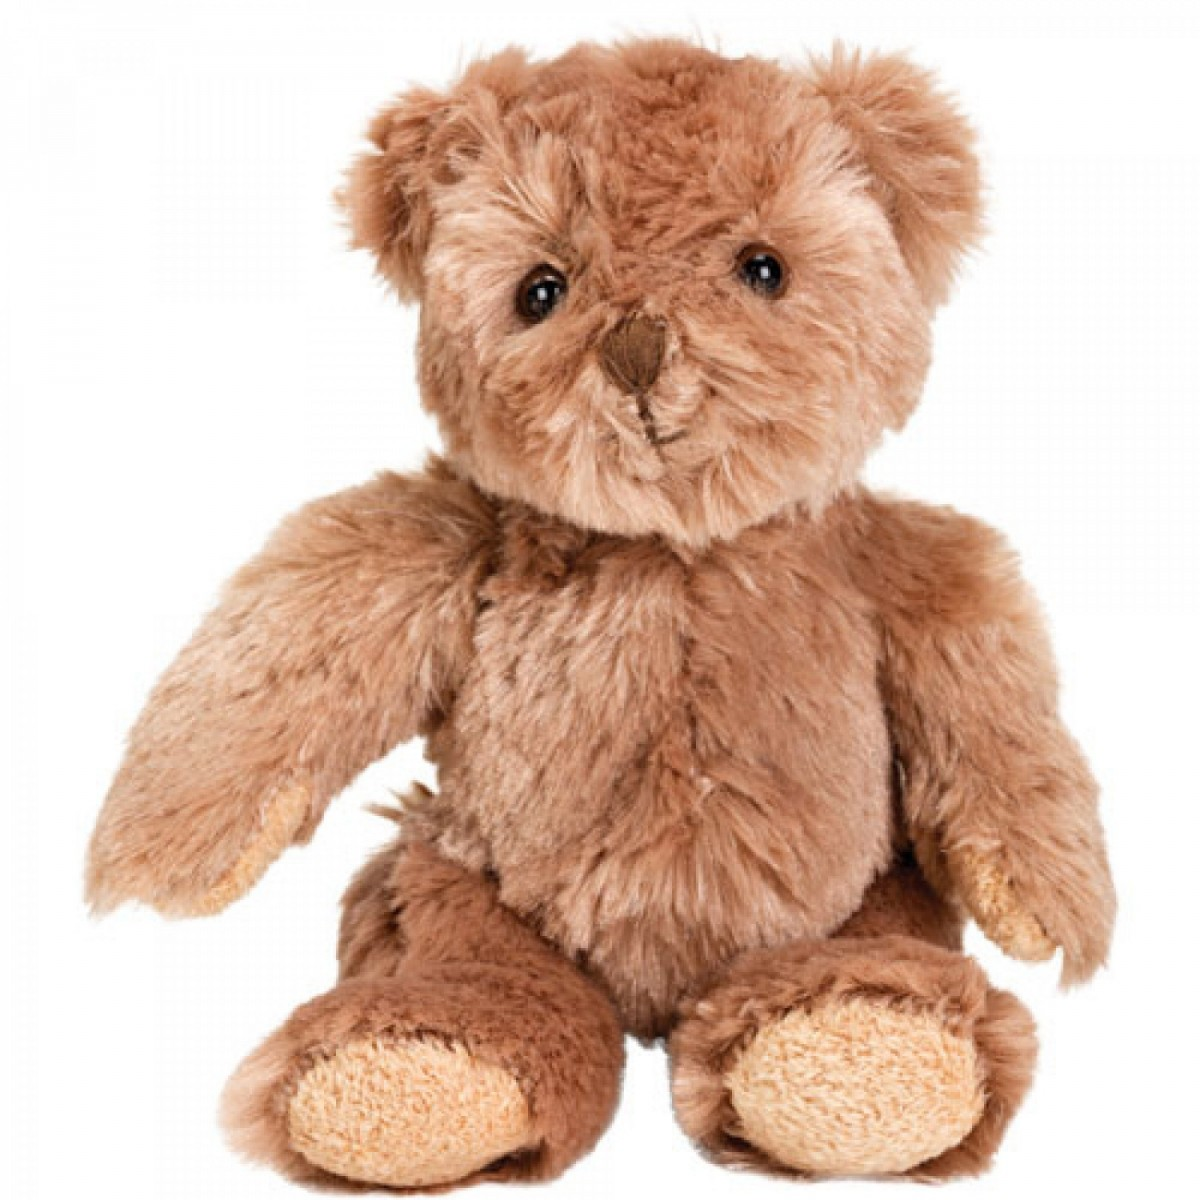 Bobby Bear - £5.99 in the Valentine Gifts category